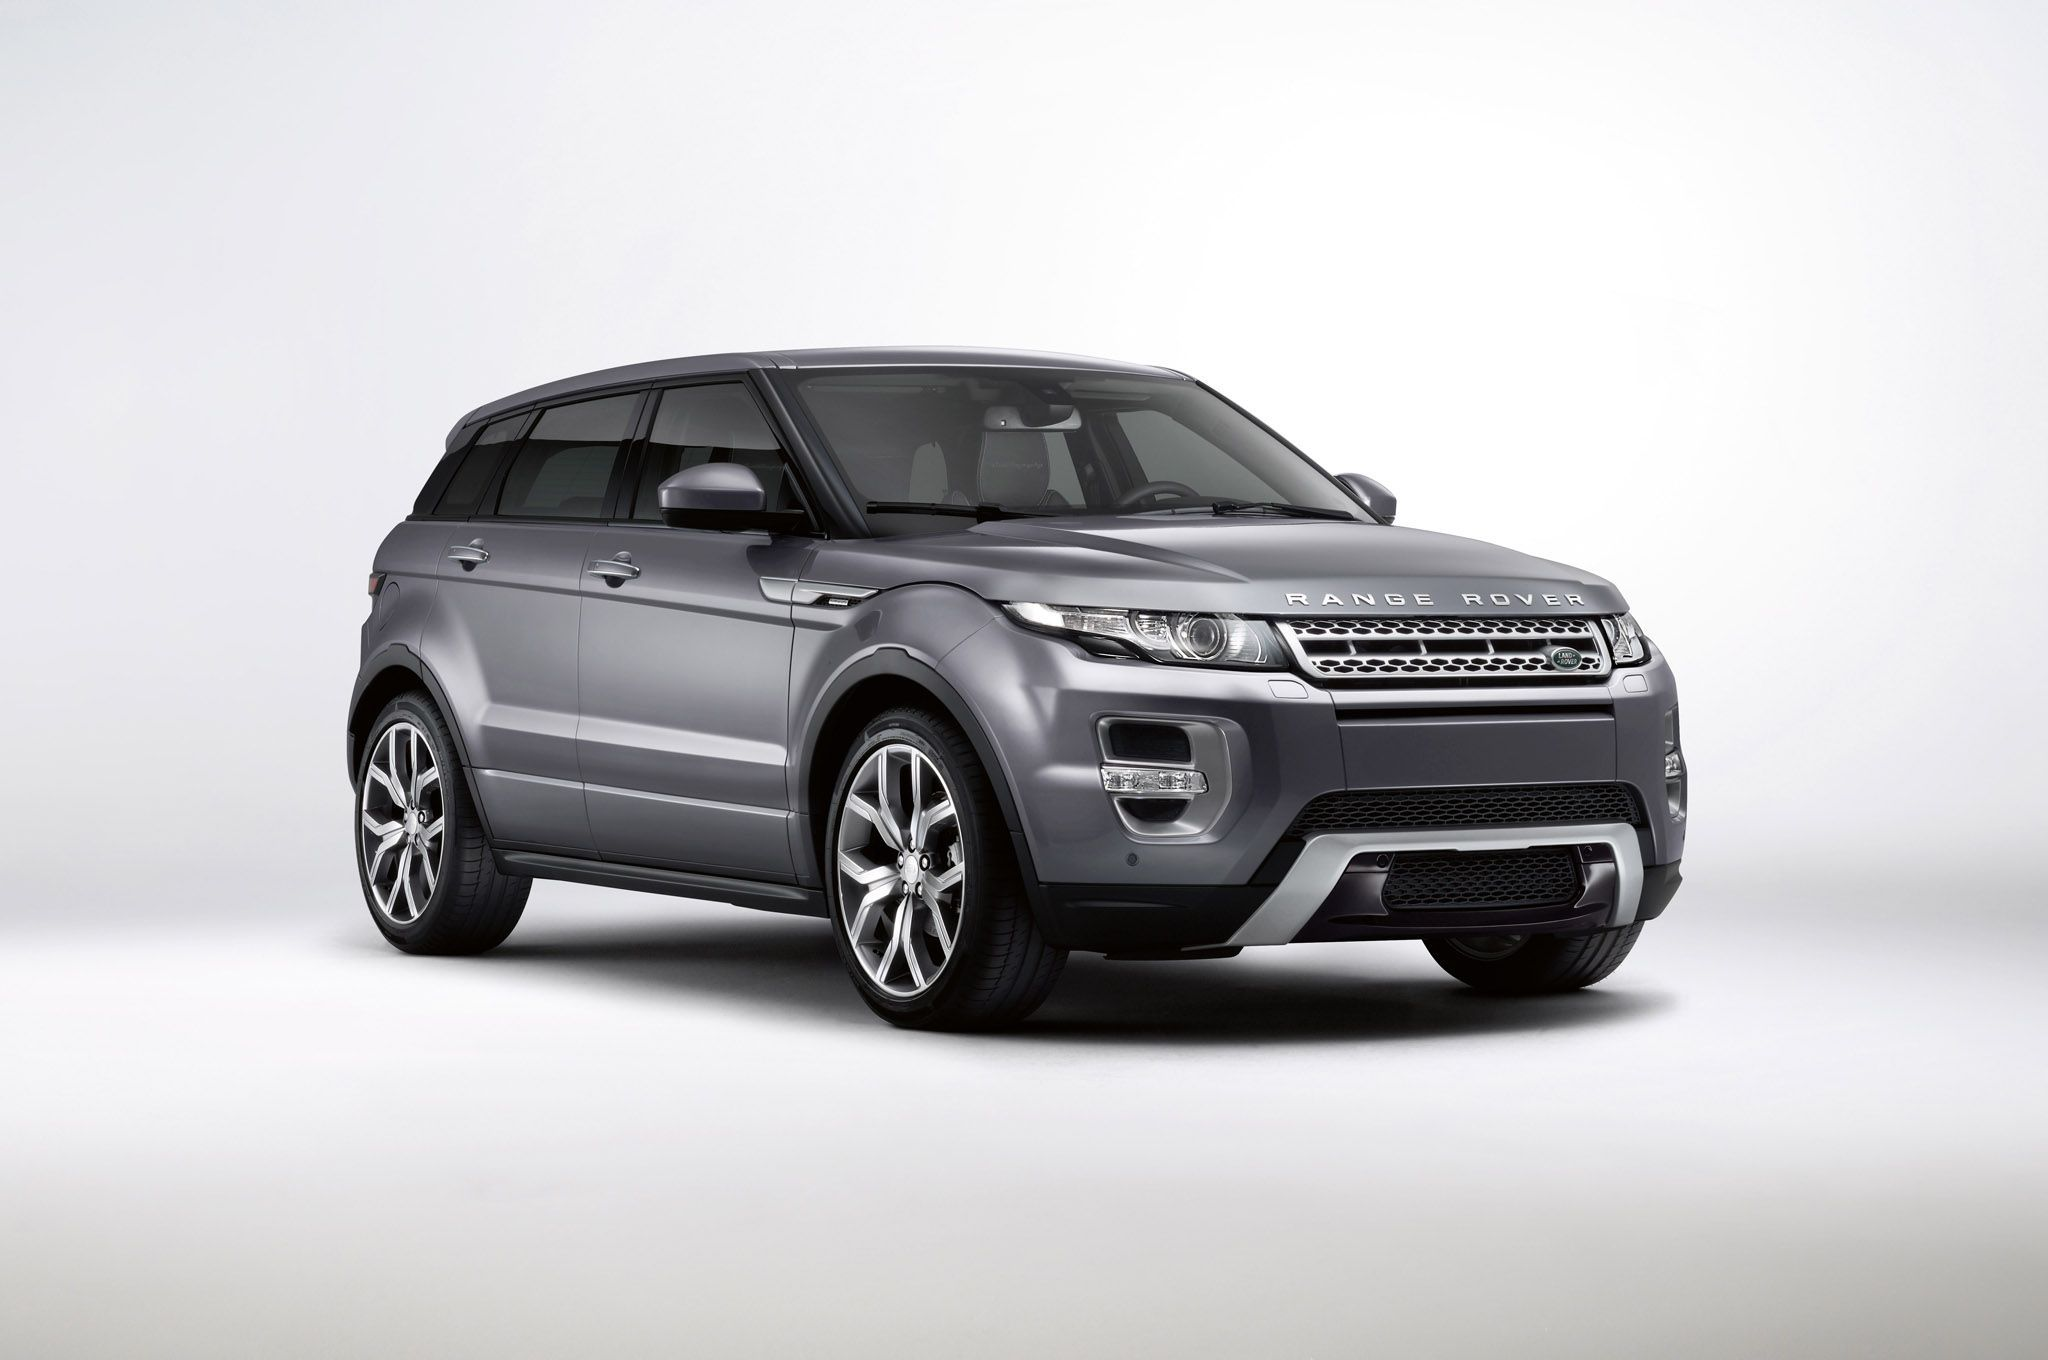 Land Rover Discovery Sport Iphone 66 Plus Wallpaper Cars